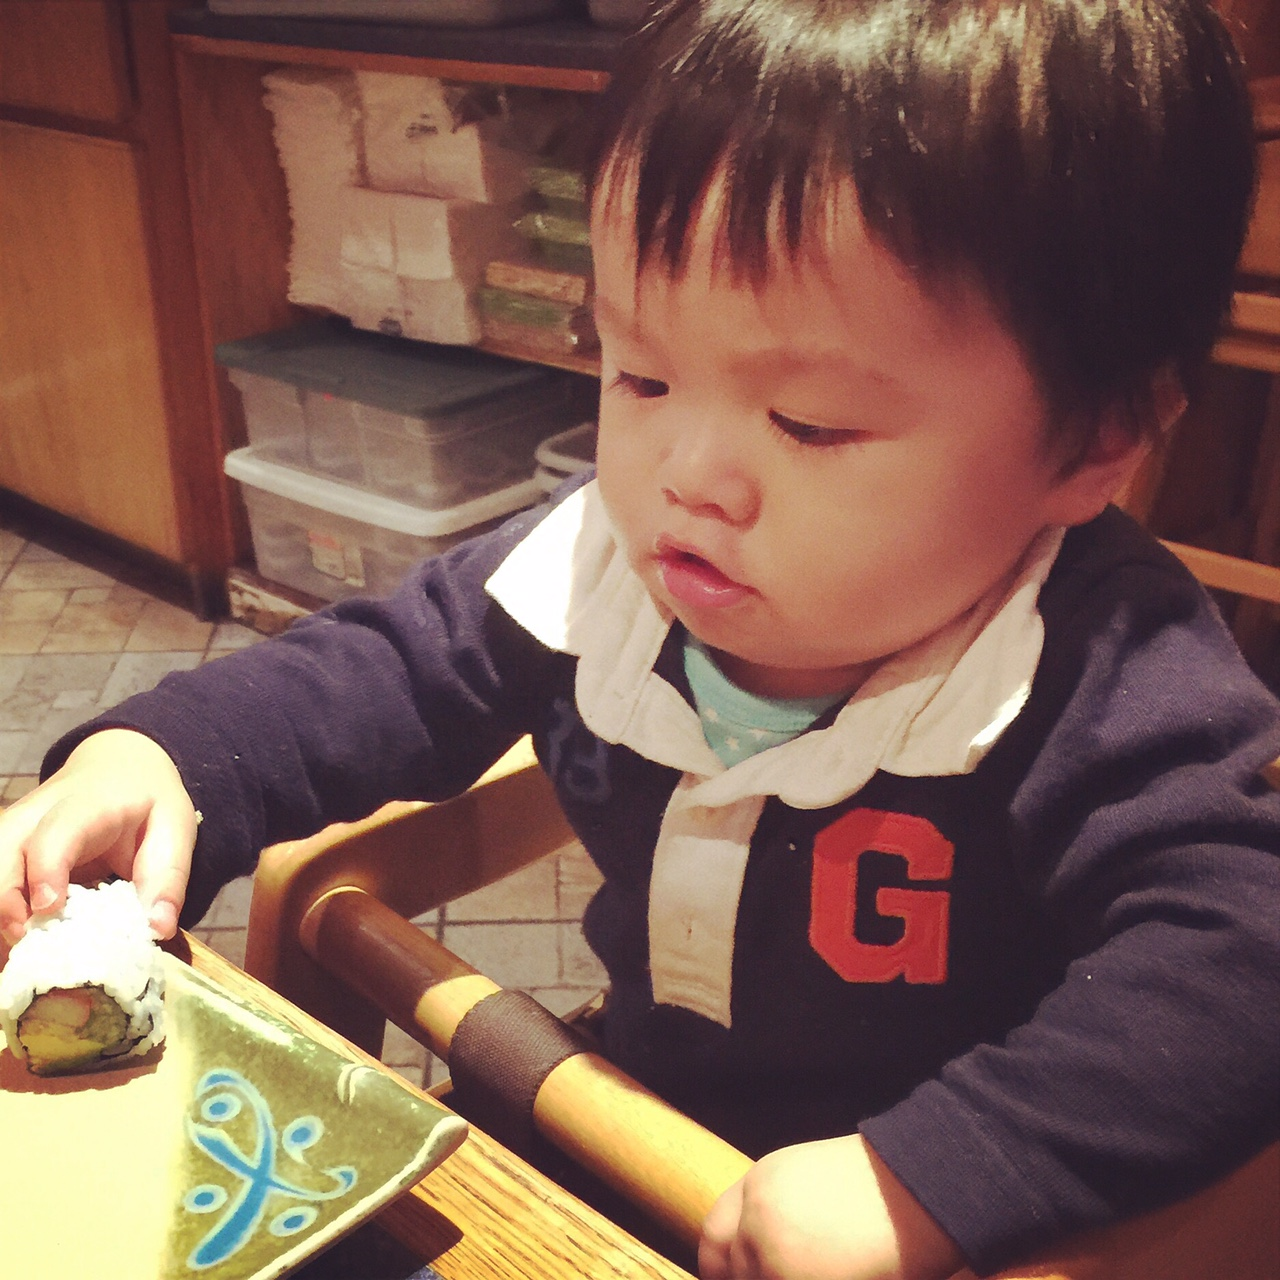 """Phil reaching for a piece of California roll at one of our favorite family sushi restaurants in NYC. Does he look like a girl, by the way? Someone said to us, """"Oh what a cute girl she is! G for girl, right?"""" Um..."""